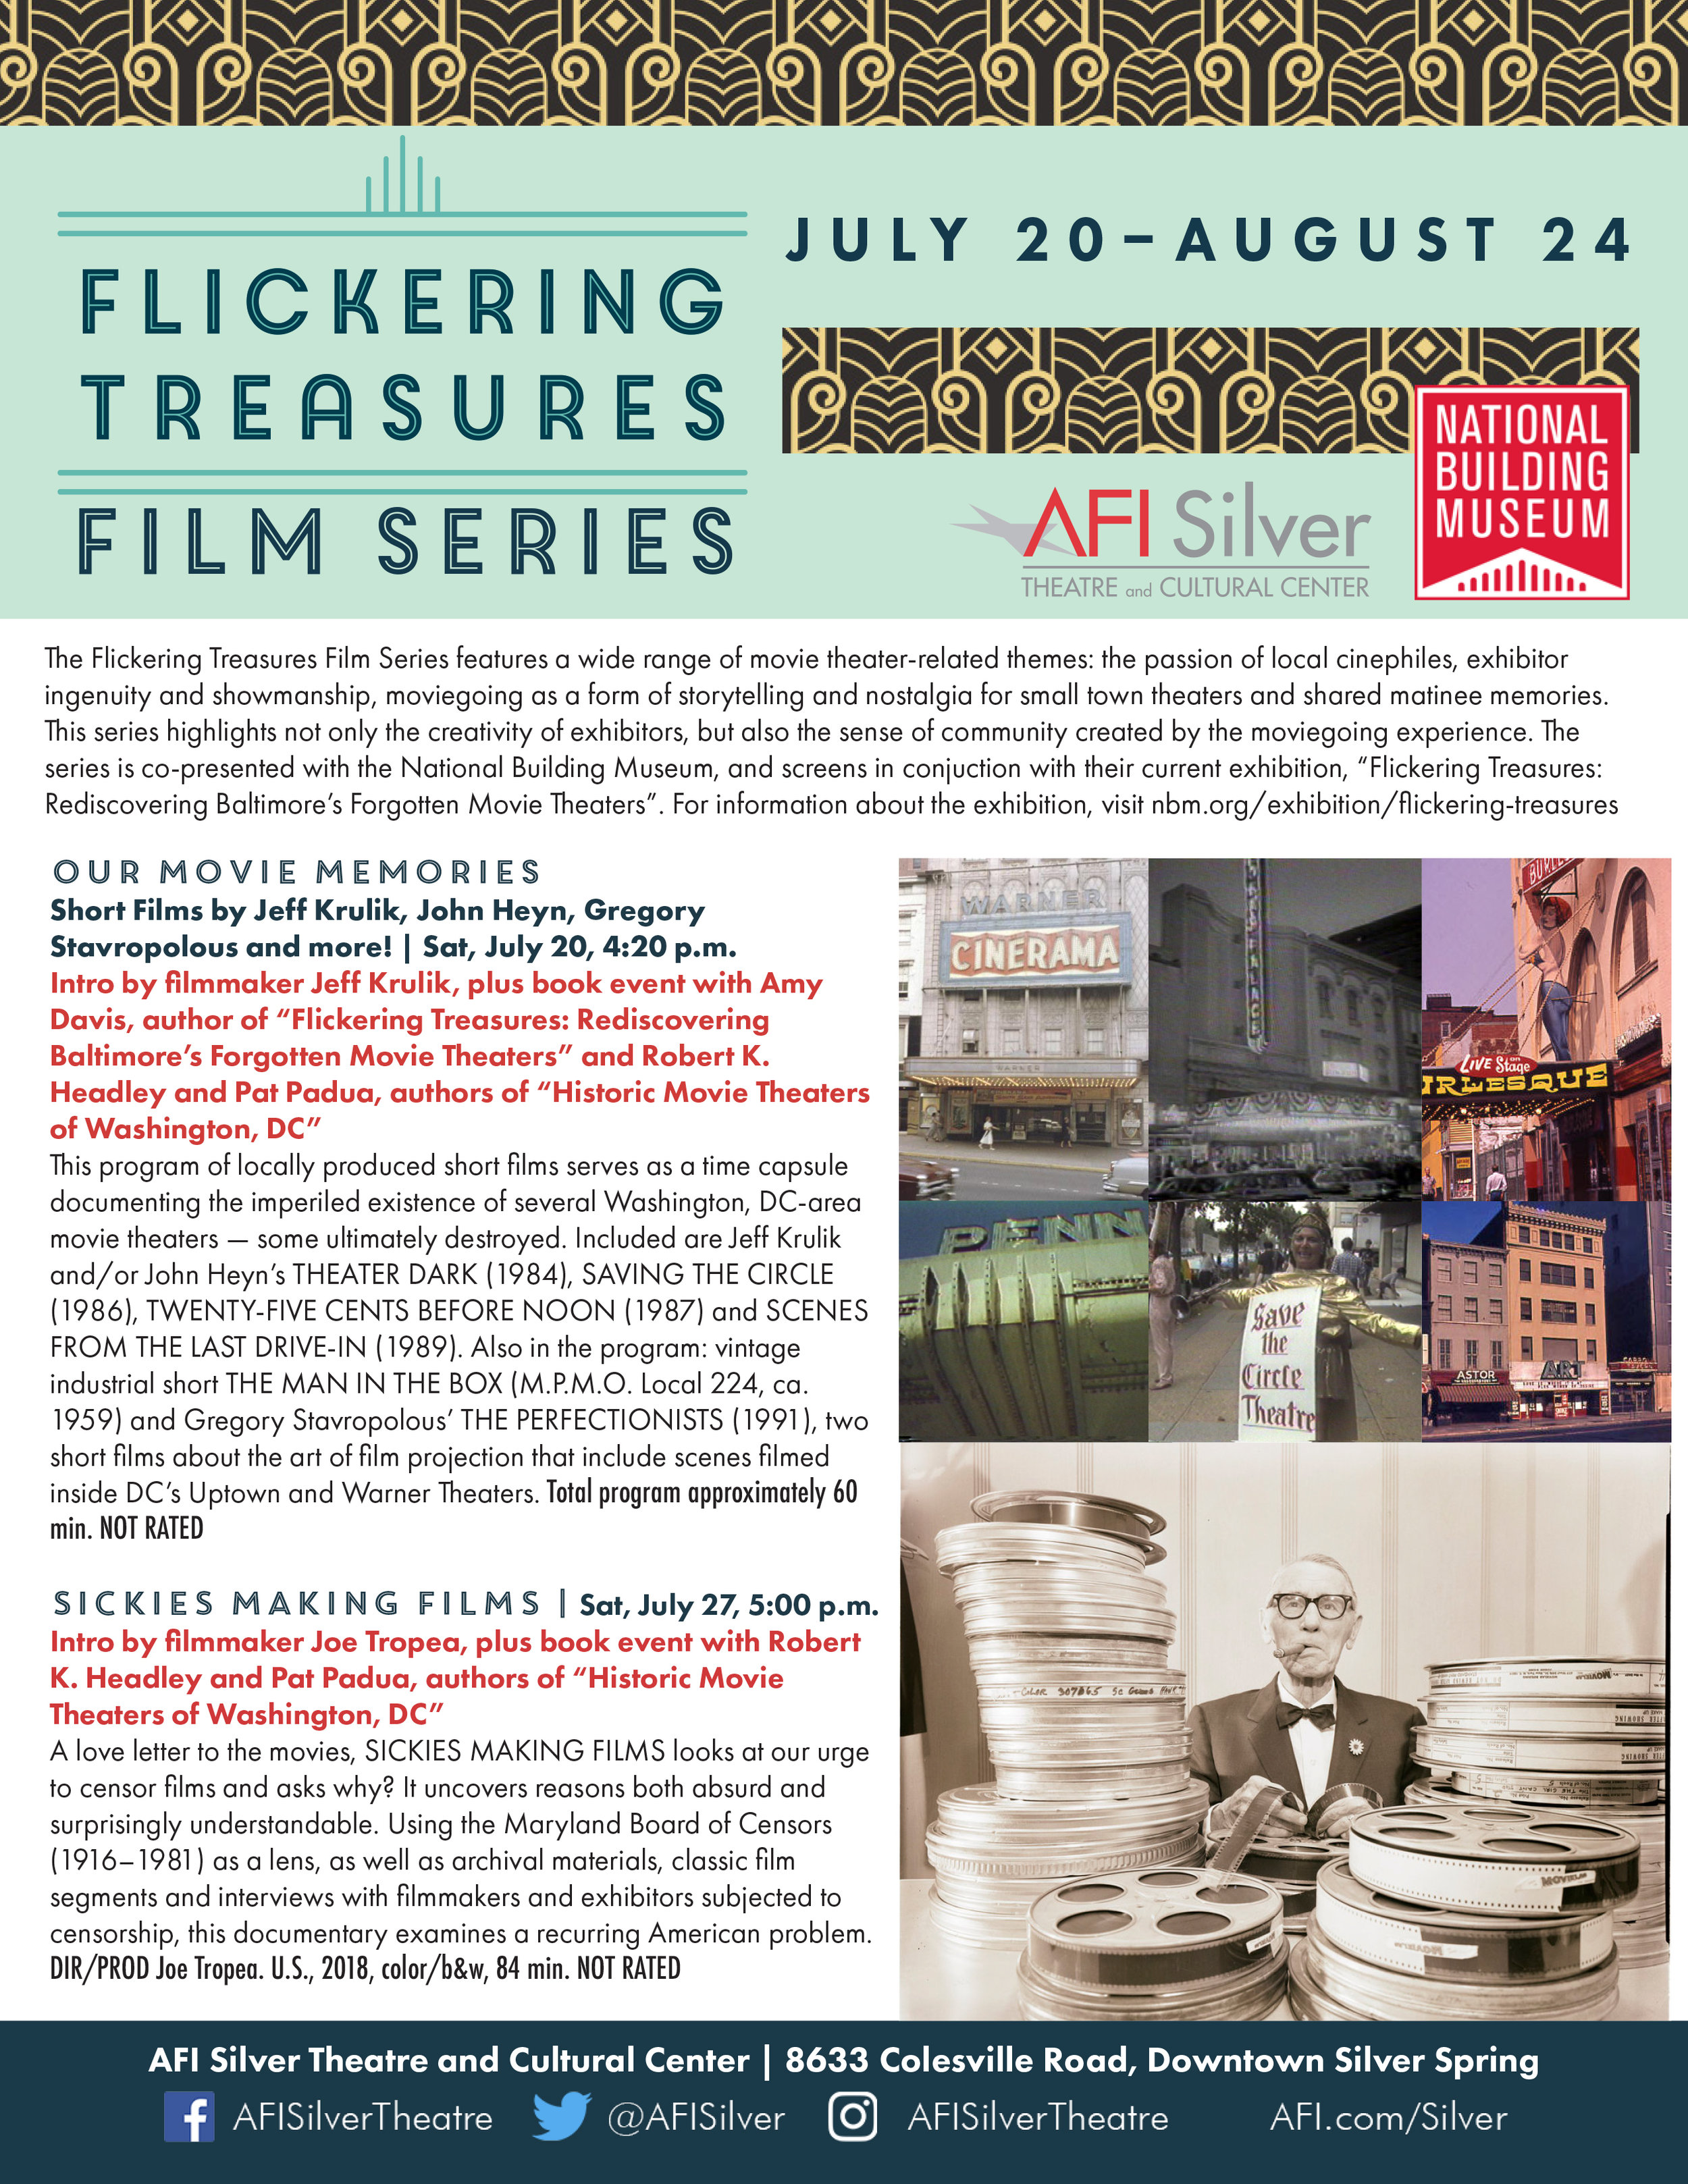 Next screening 7/27 - We'll be screening at the AFI Silver Theatre on July 27, 5:00pm. More details below.